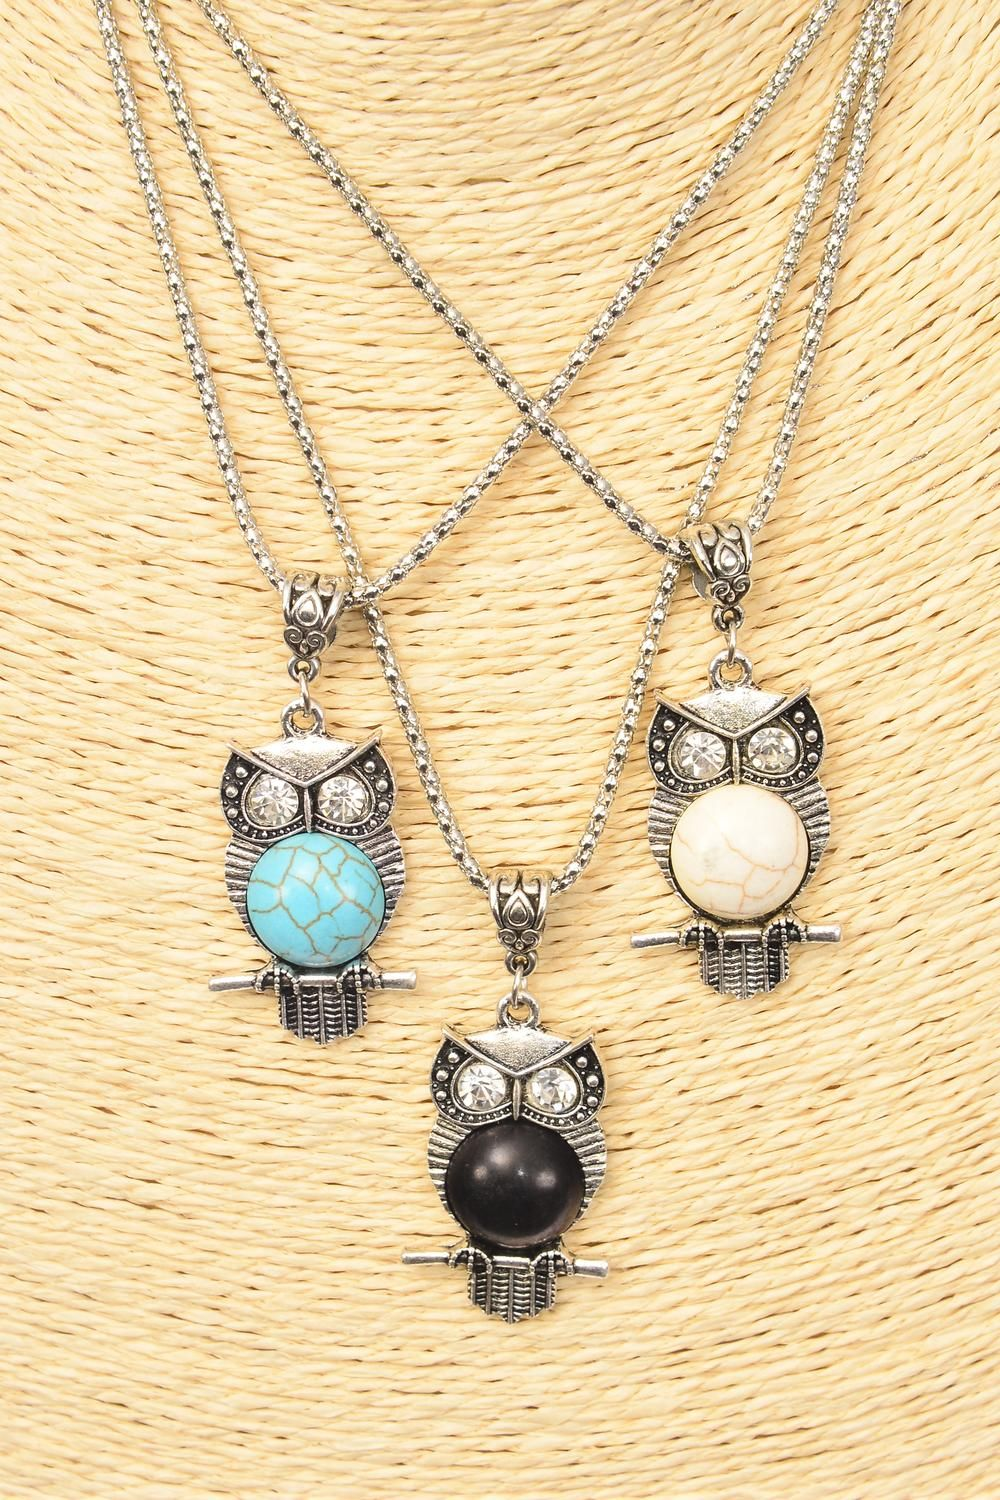 "Necklace Silver Chain Owl Semiprecious Stone/DZ match 02660 Pendant-1.5""x 1"" Wide,Chain-18"" Extension Chain,4 Ivory,4 Black,4 Turquoise Asst,Hang Tag & OPP Bag & UPC Code"